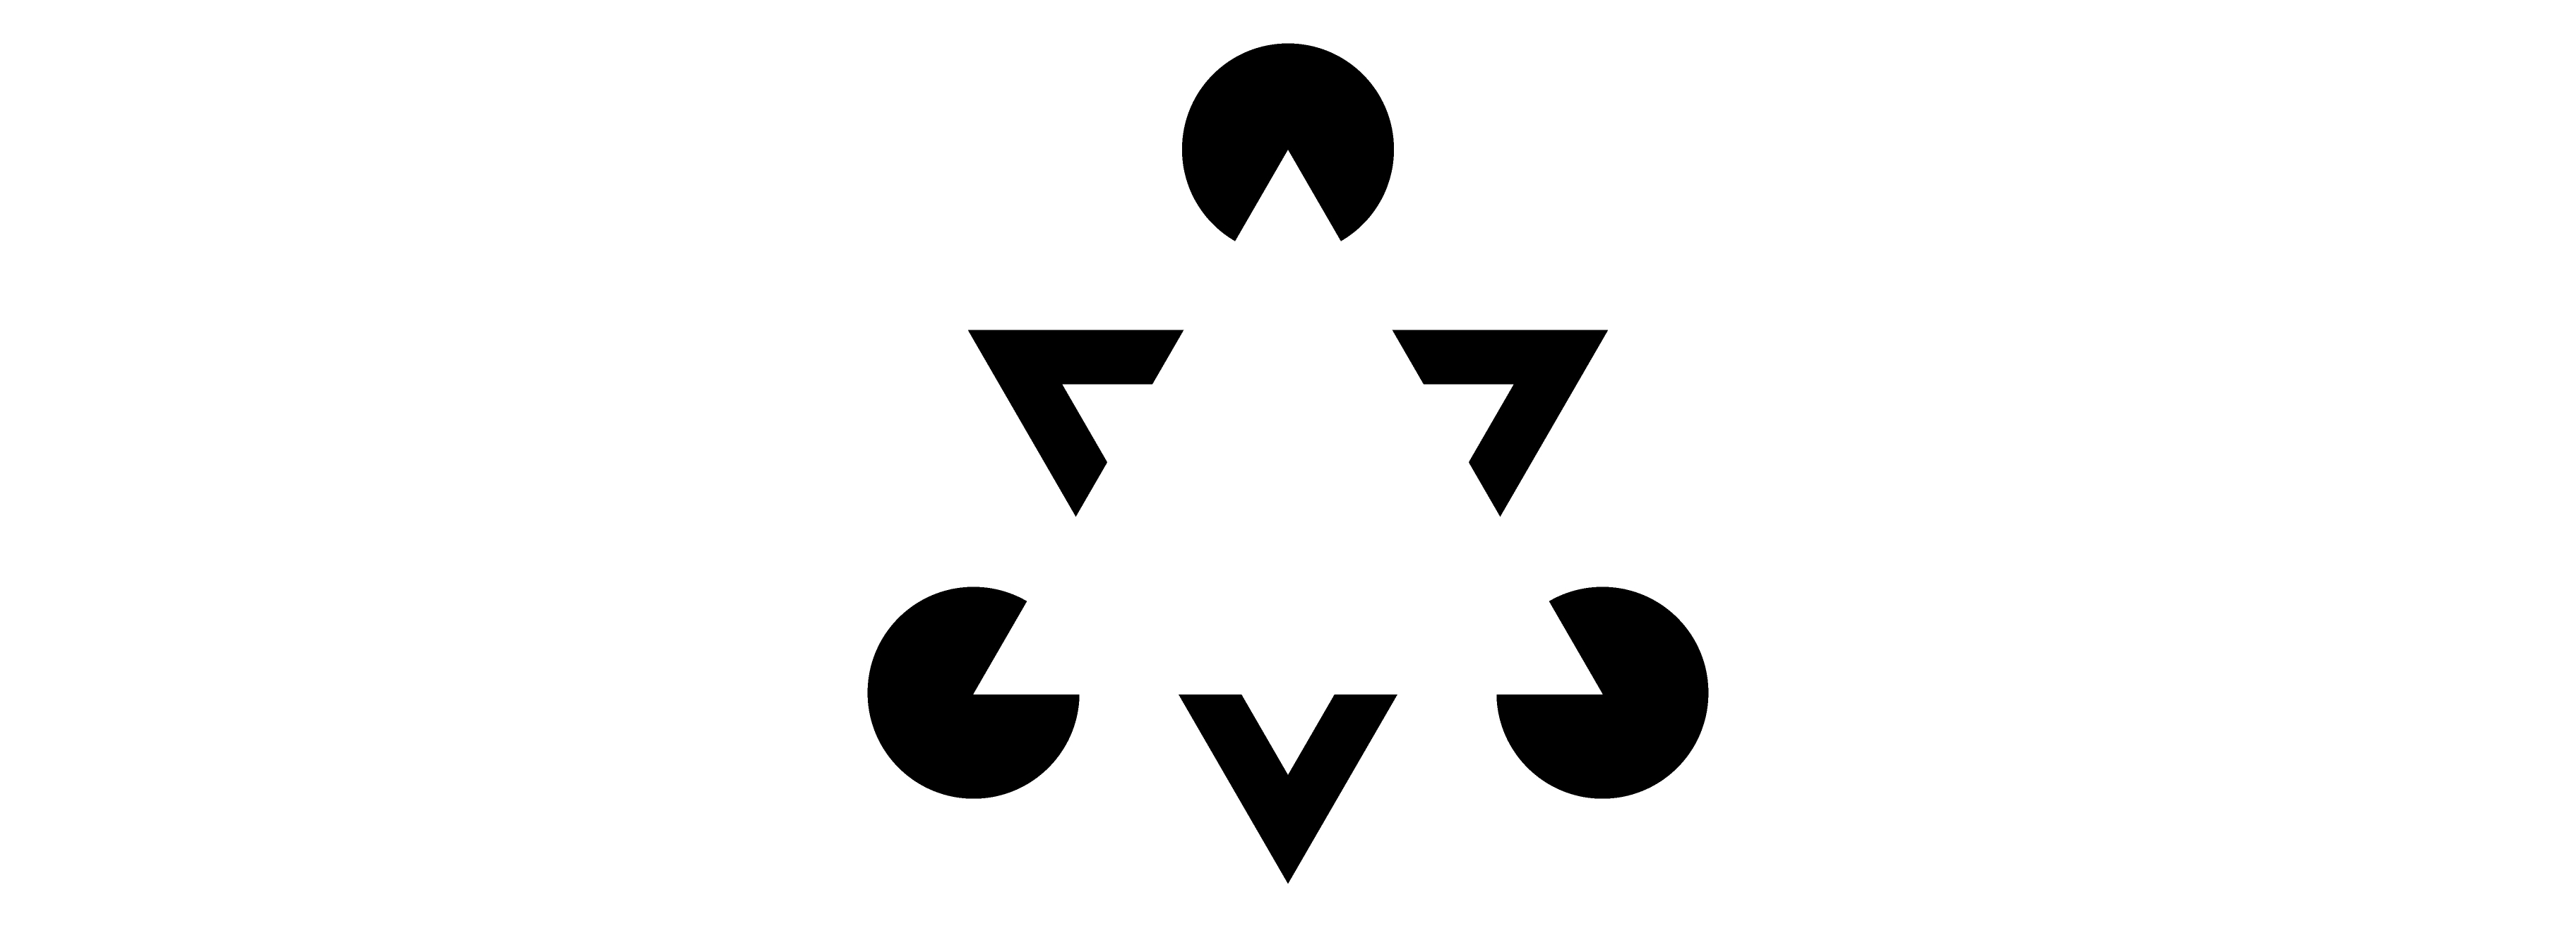 There is an optical illusion where many shapes are forming a triangle